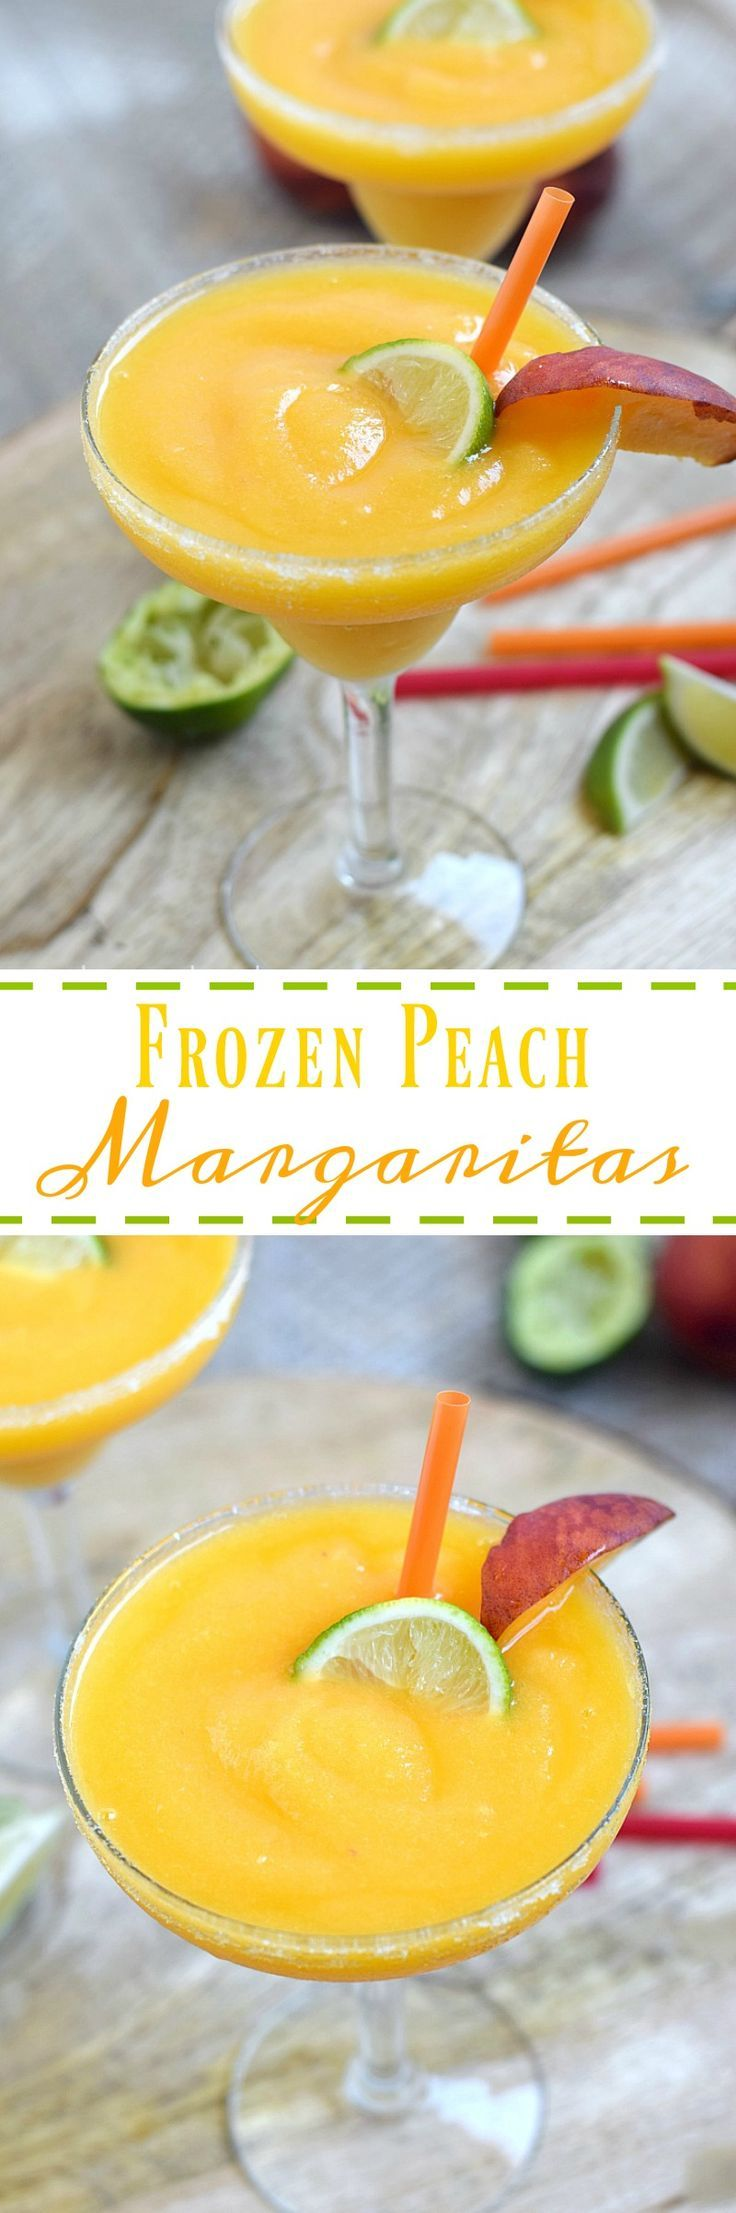 Hot summer nights call for for a refreshing drink, and these Frozen Peach Margaritas are perfect for any occasion | cookingwithcurls.com